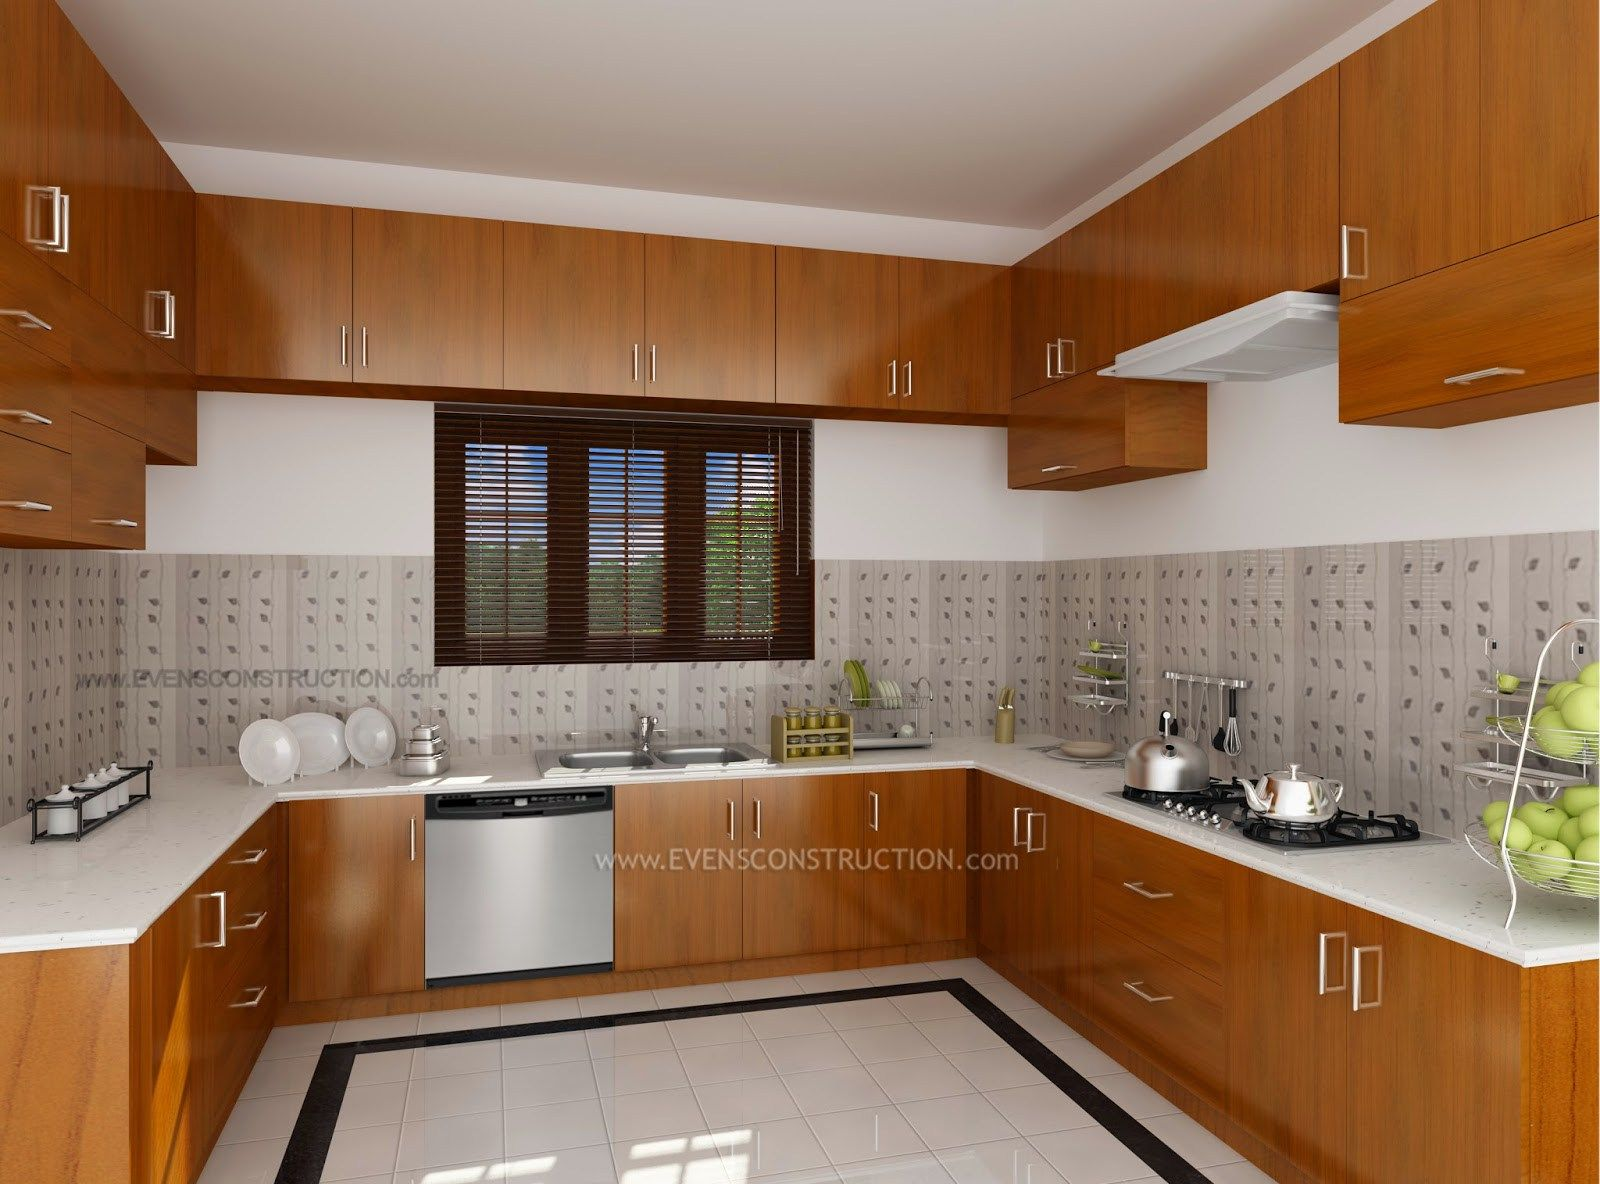 Design interior kitchen home kerala modern house kitchen for Home interior ideas